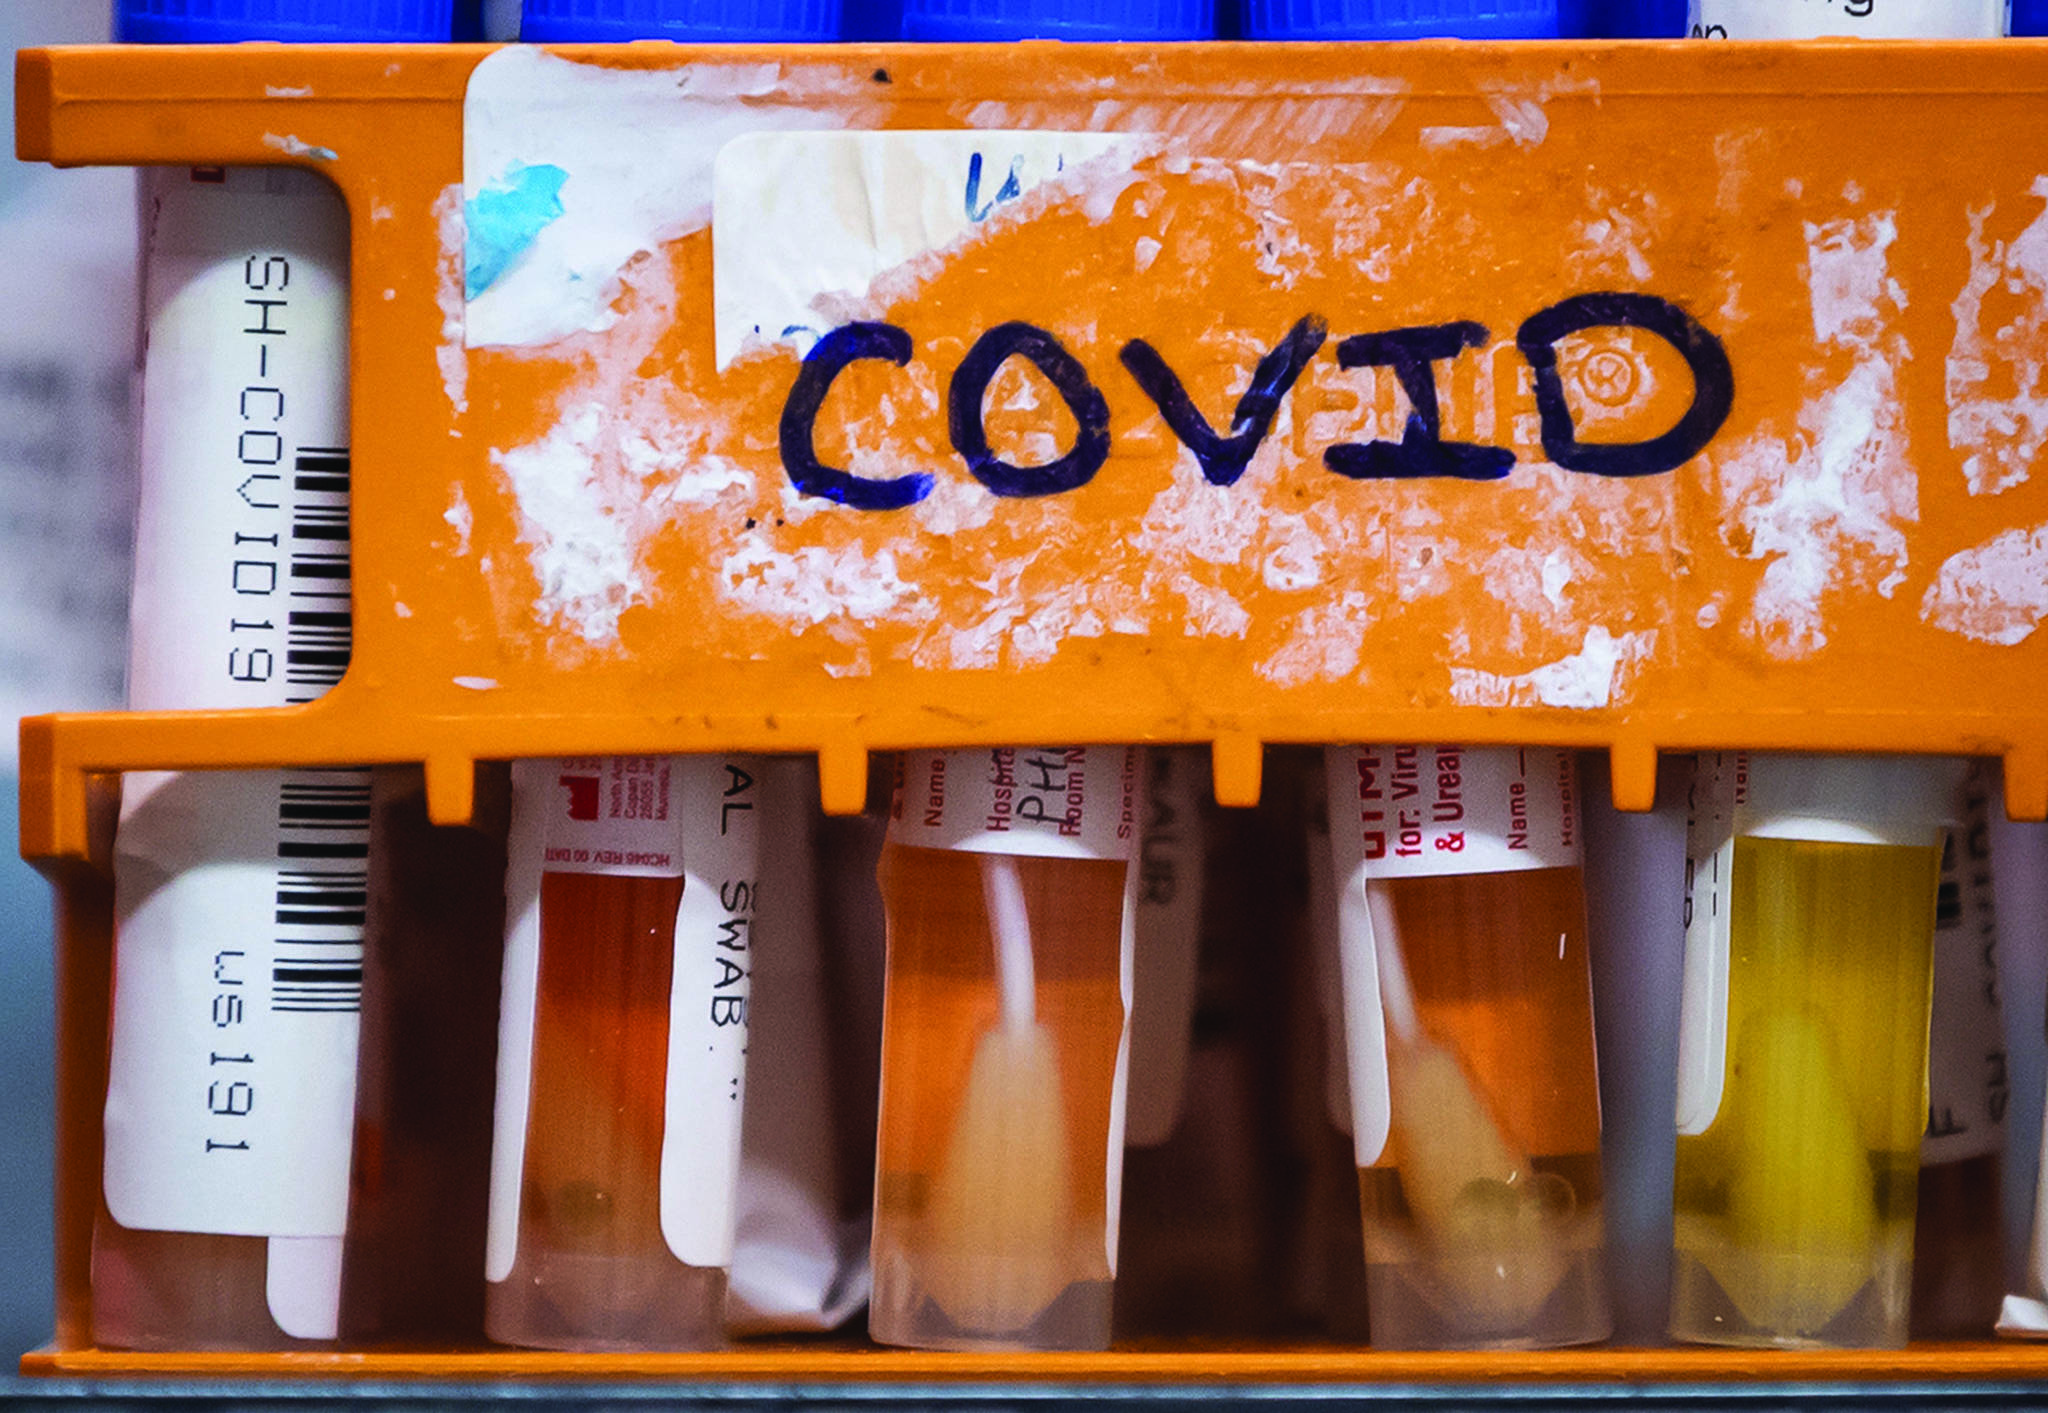 Specimens to be tested for COVID-19 are seen at LifeLabs after being logged upon receipt at the company's lab, in Surrey, B.C., on Thursday, March 26, 2020. THE CANADIAN PRESS/Darryl Dyck